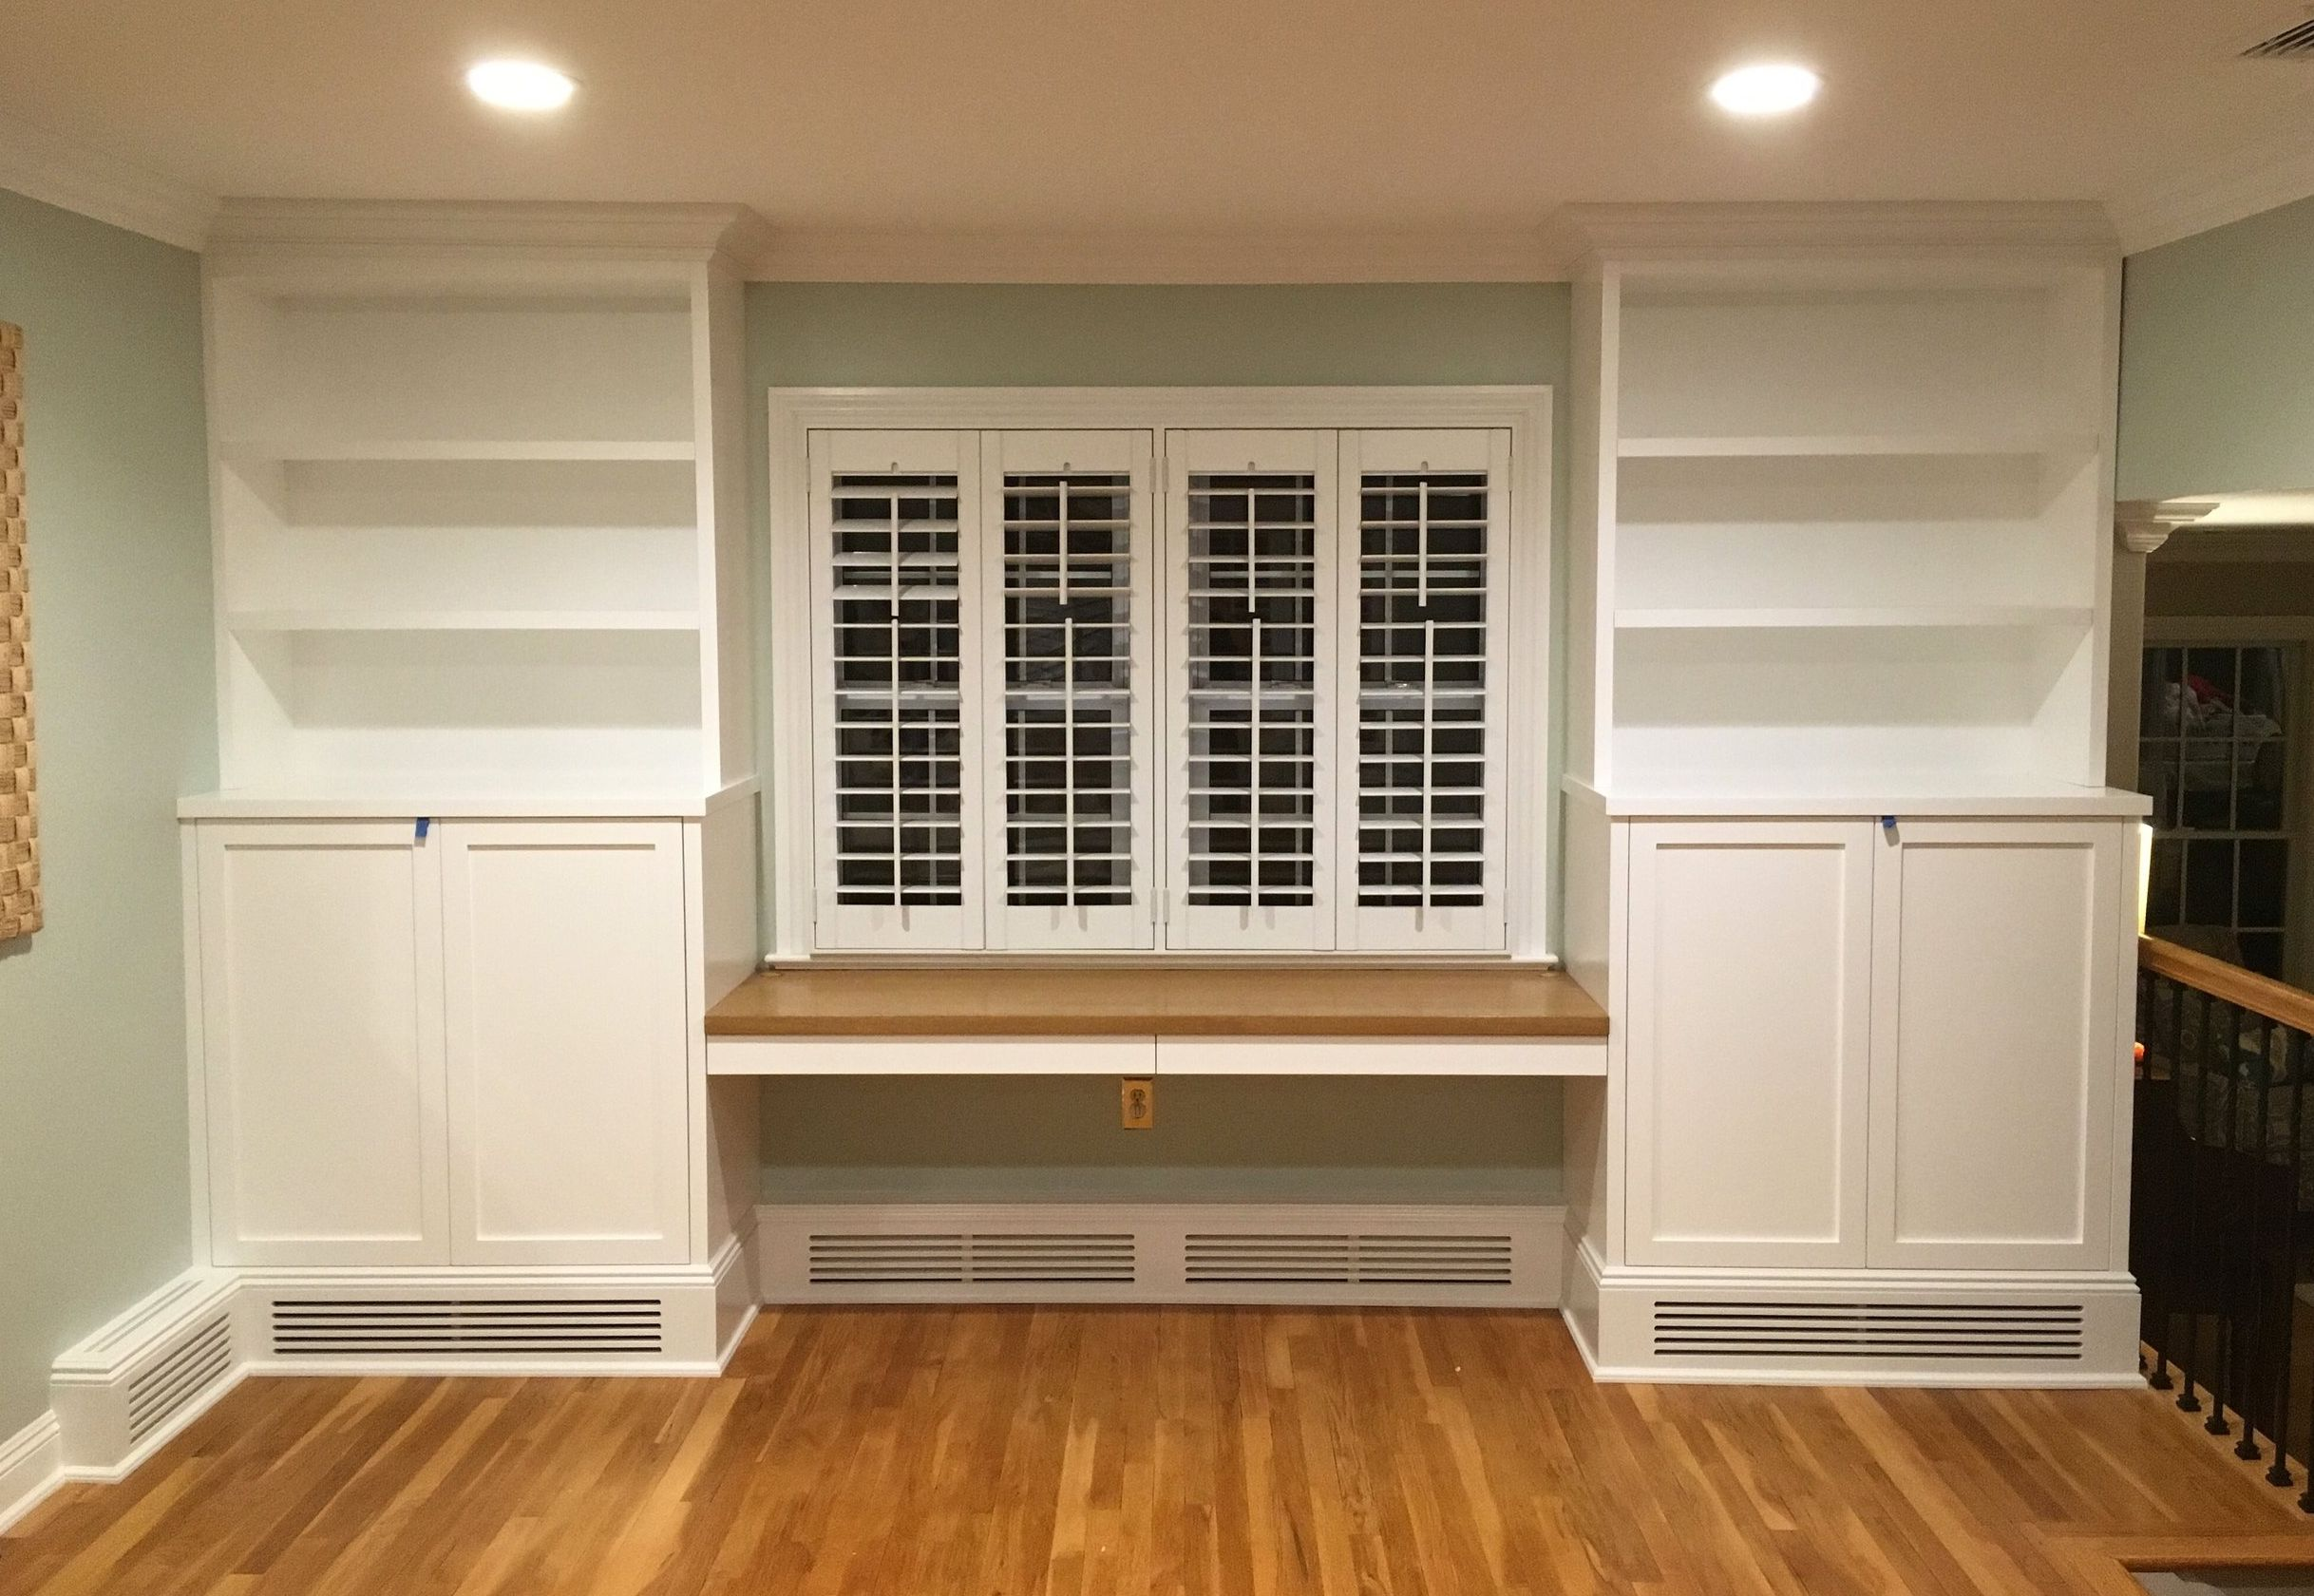 gallery — Fine Point Baseboard heating, Built in shelves